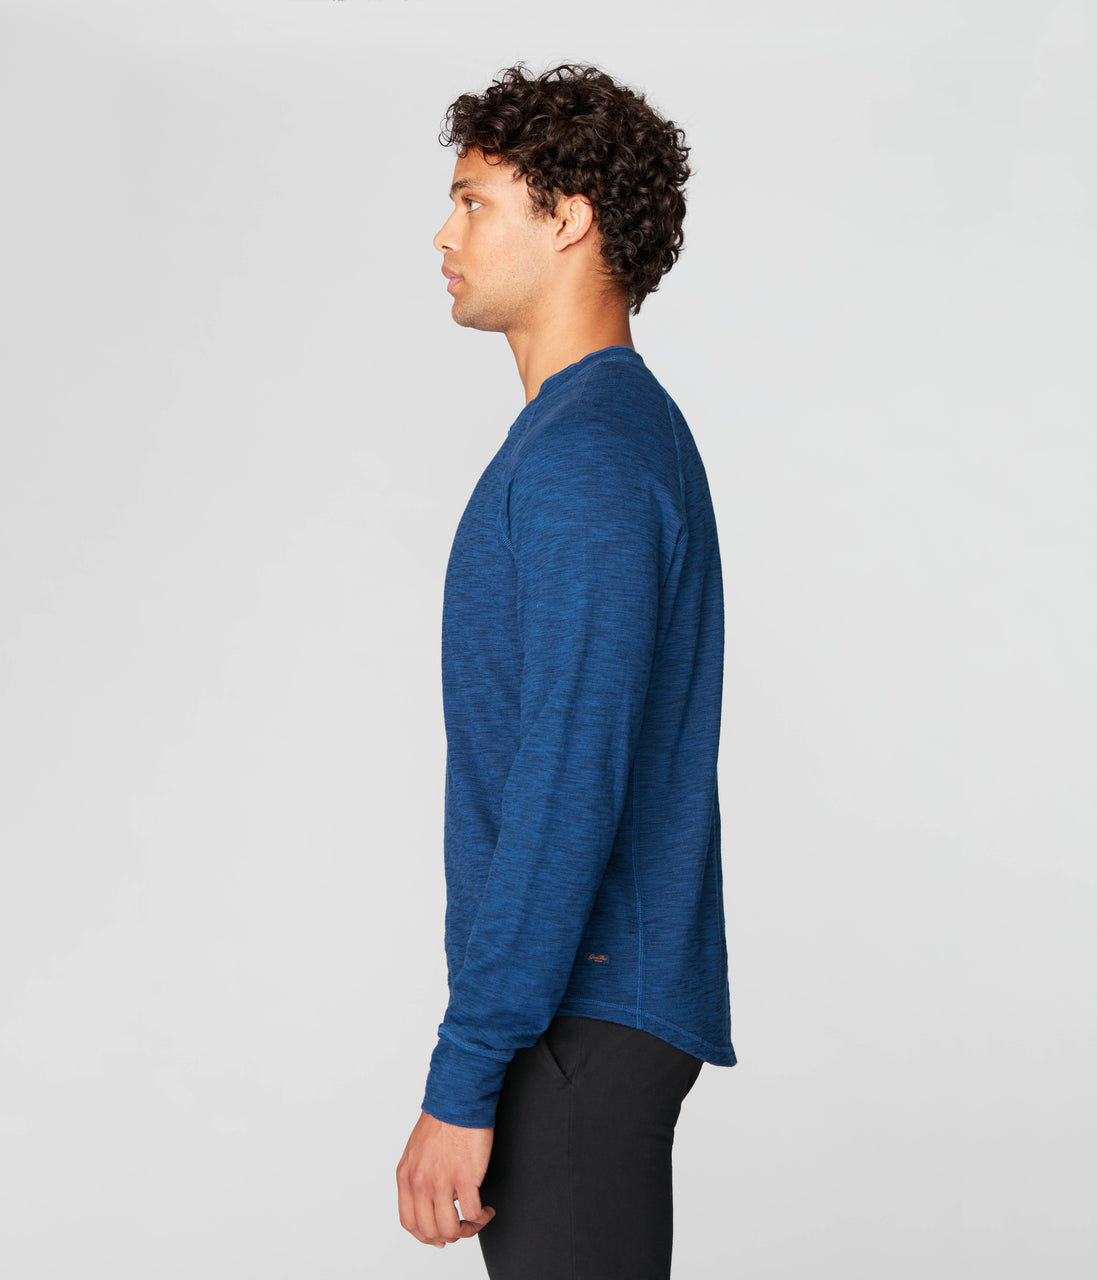 Legend Henley in Black Marl Soft Slub - Blue - Good Man Brand - Legend Henley in Black Marl Soft Slub - Blue